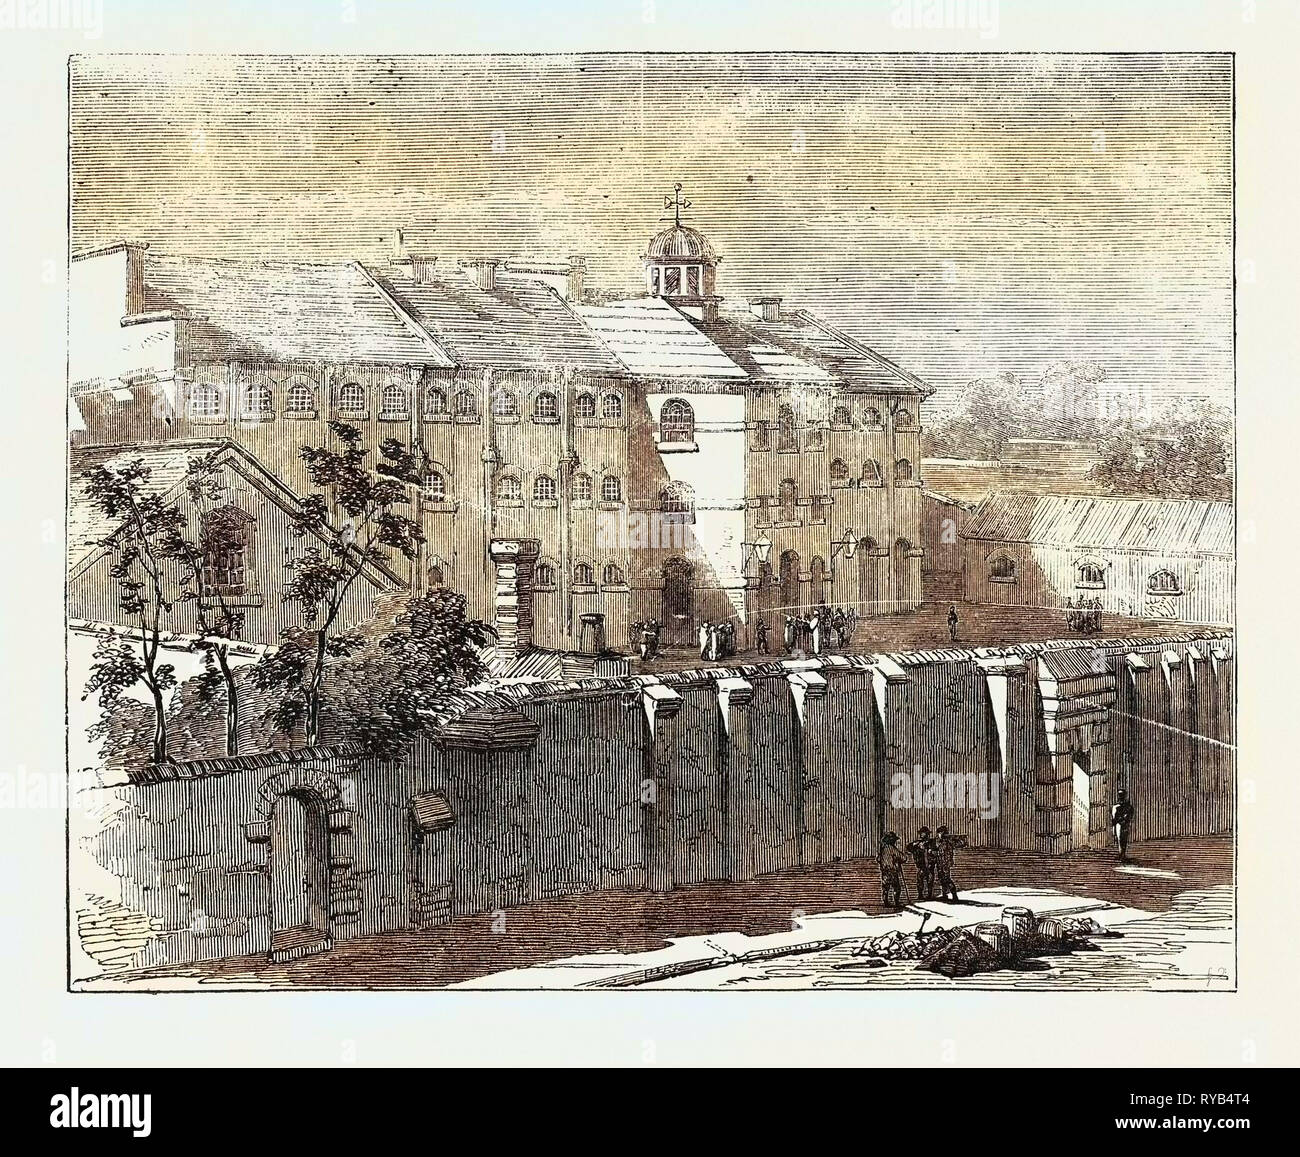 Gaol at Lewes in which the Russian Prisoners Are Confined 1854 - Stock Image